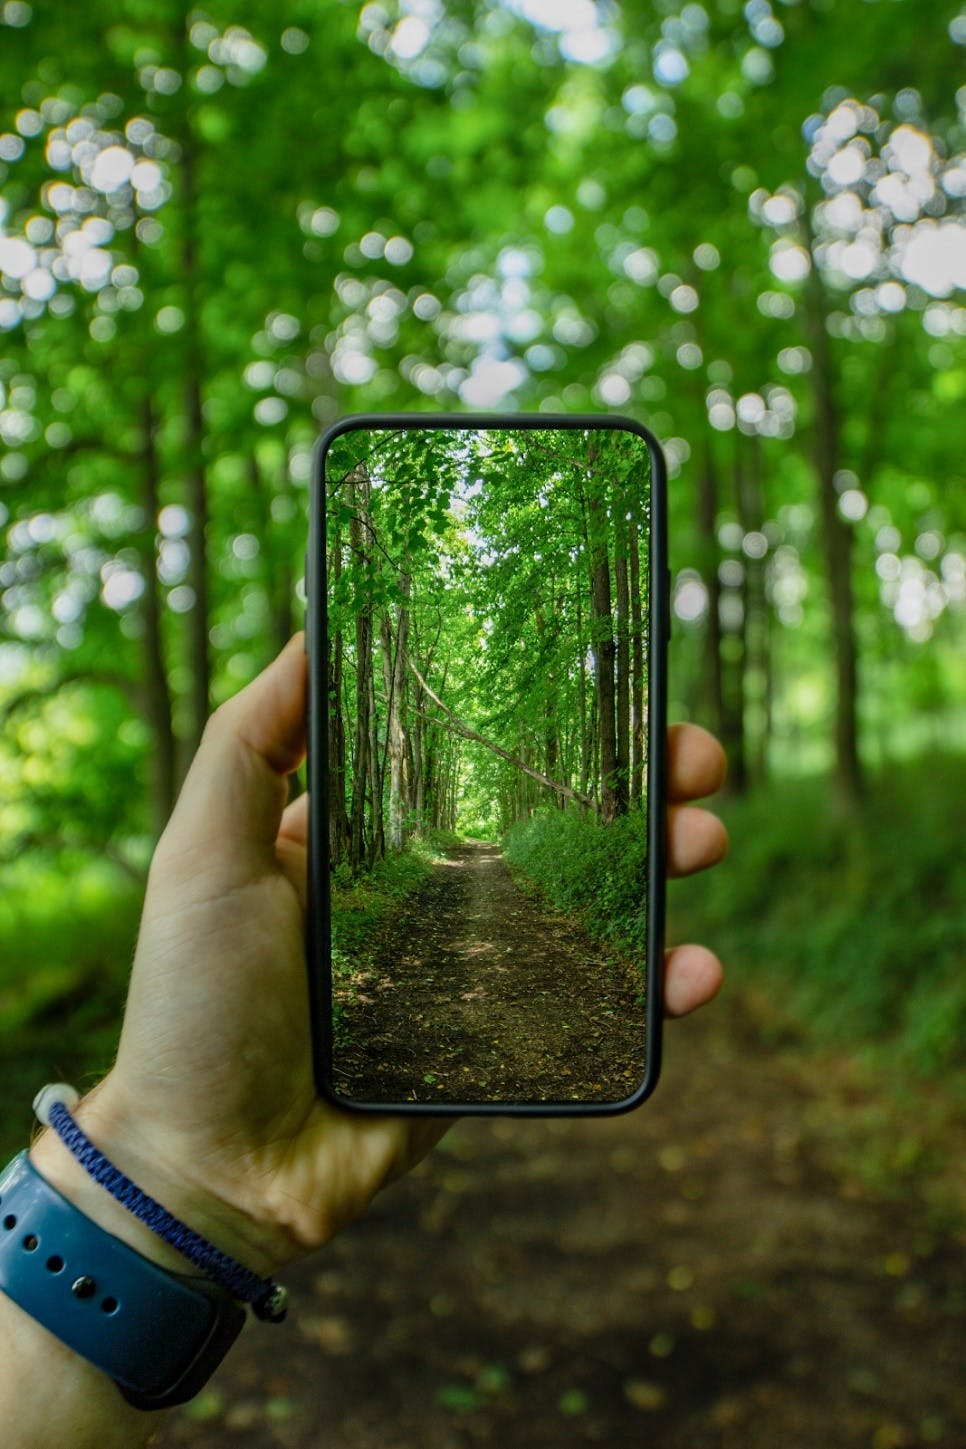 A person taking a photo of a forest with their sustainable and ethical smartphone by Fairphone.